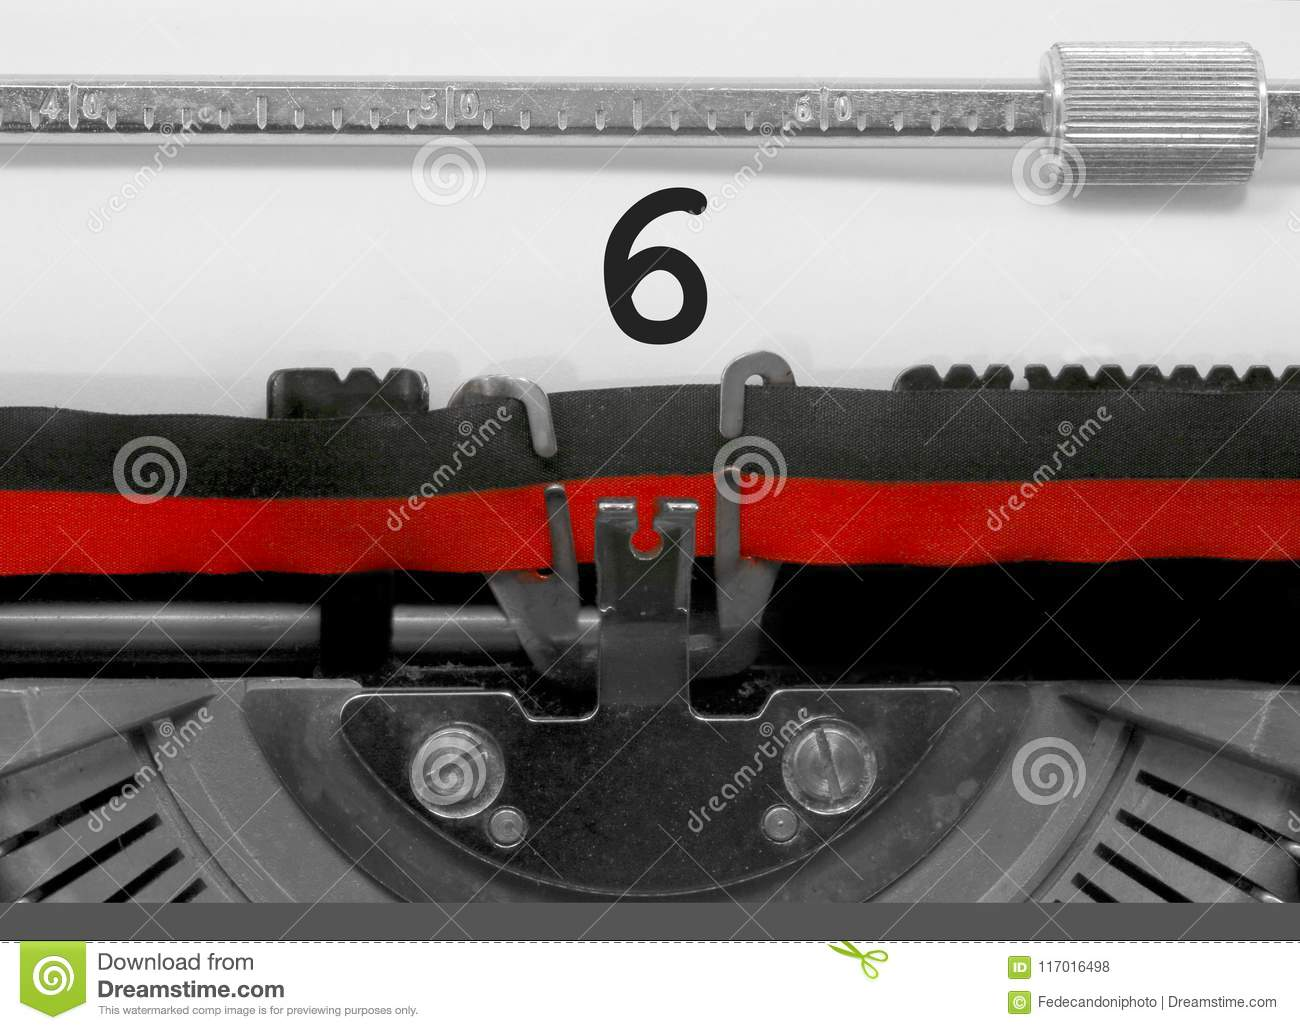 6 Number by the old typewriter on white paper